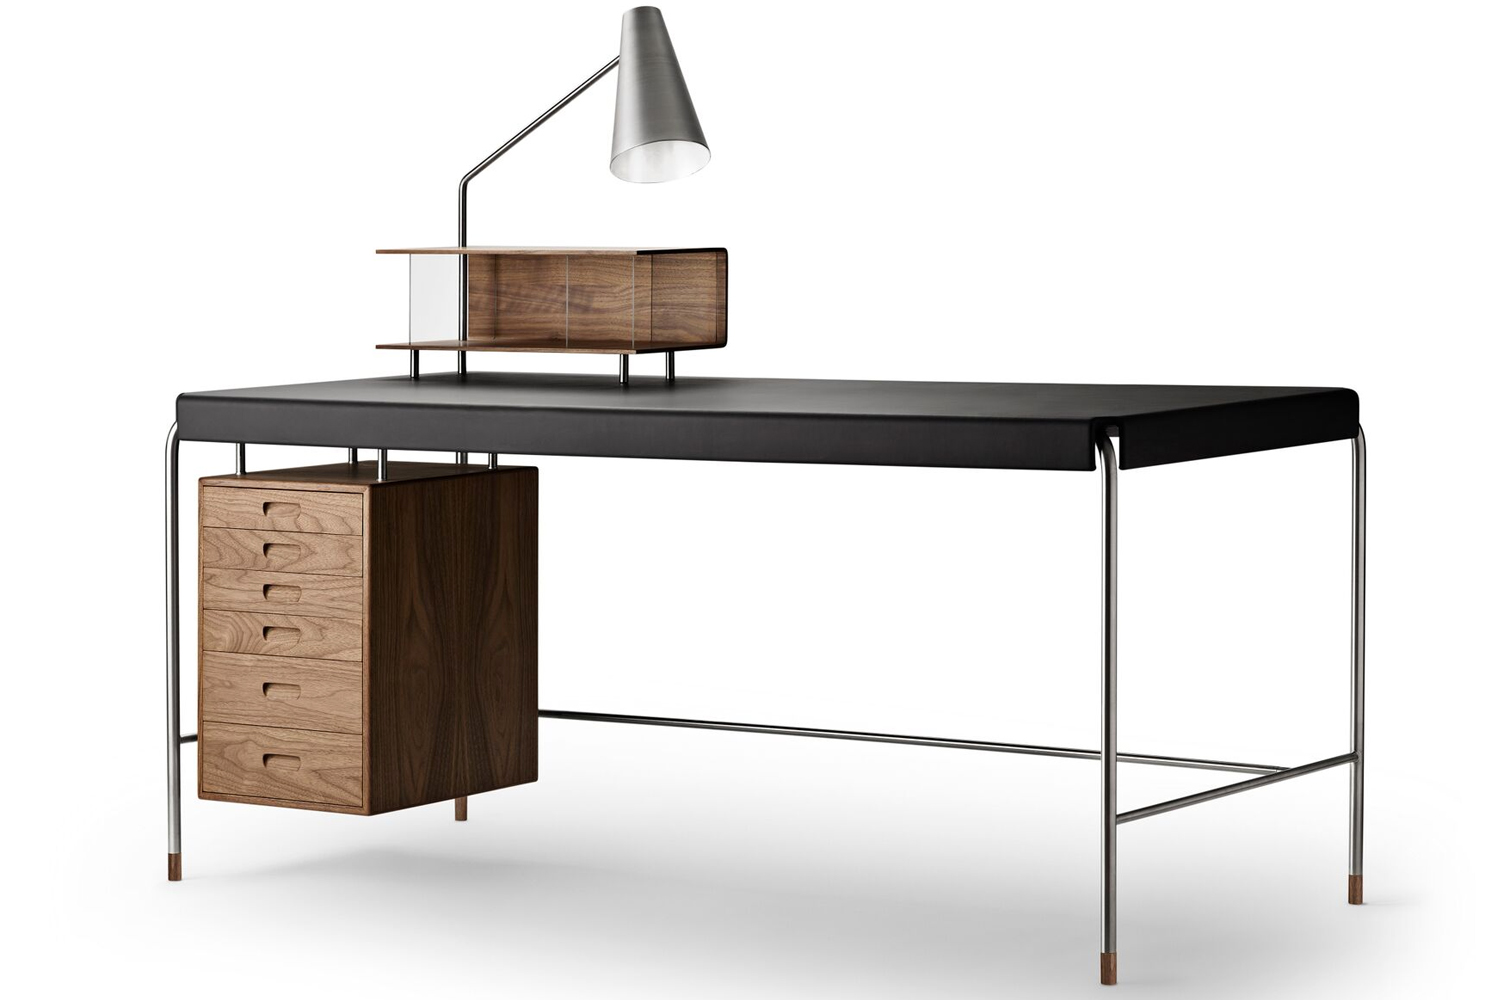 The Society table by Arne Jacobsen will be available starting this September.